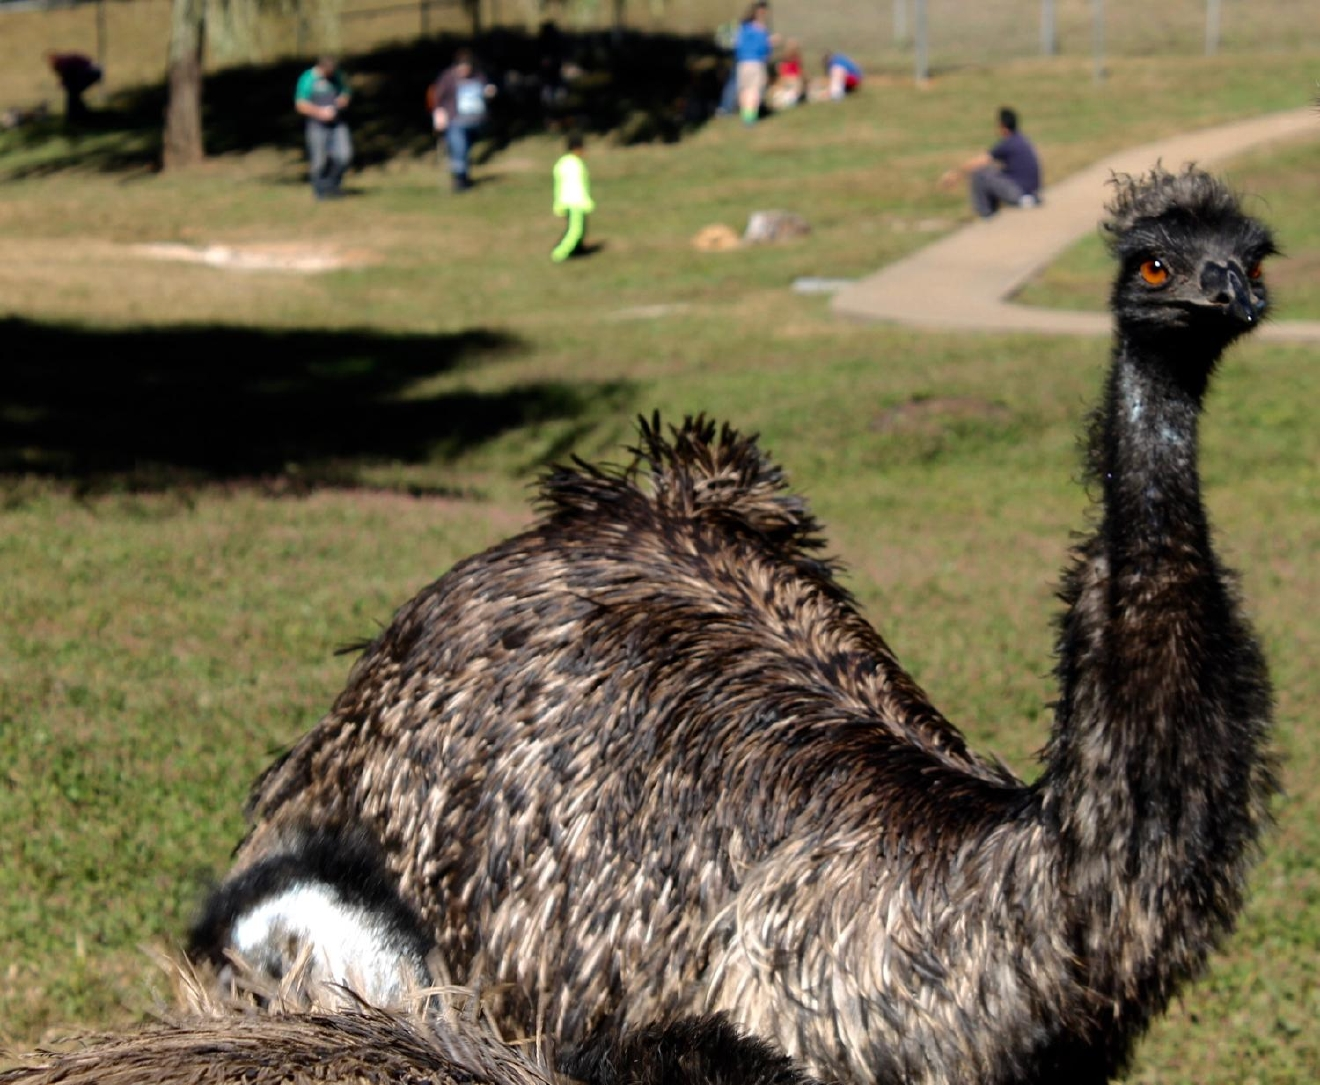 Kentucky Down Under Adventure Zoo features emus, flightless birds that can run at speeds up to 37 mph. / Image: Rose Brewington